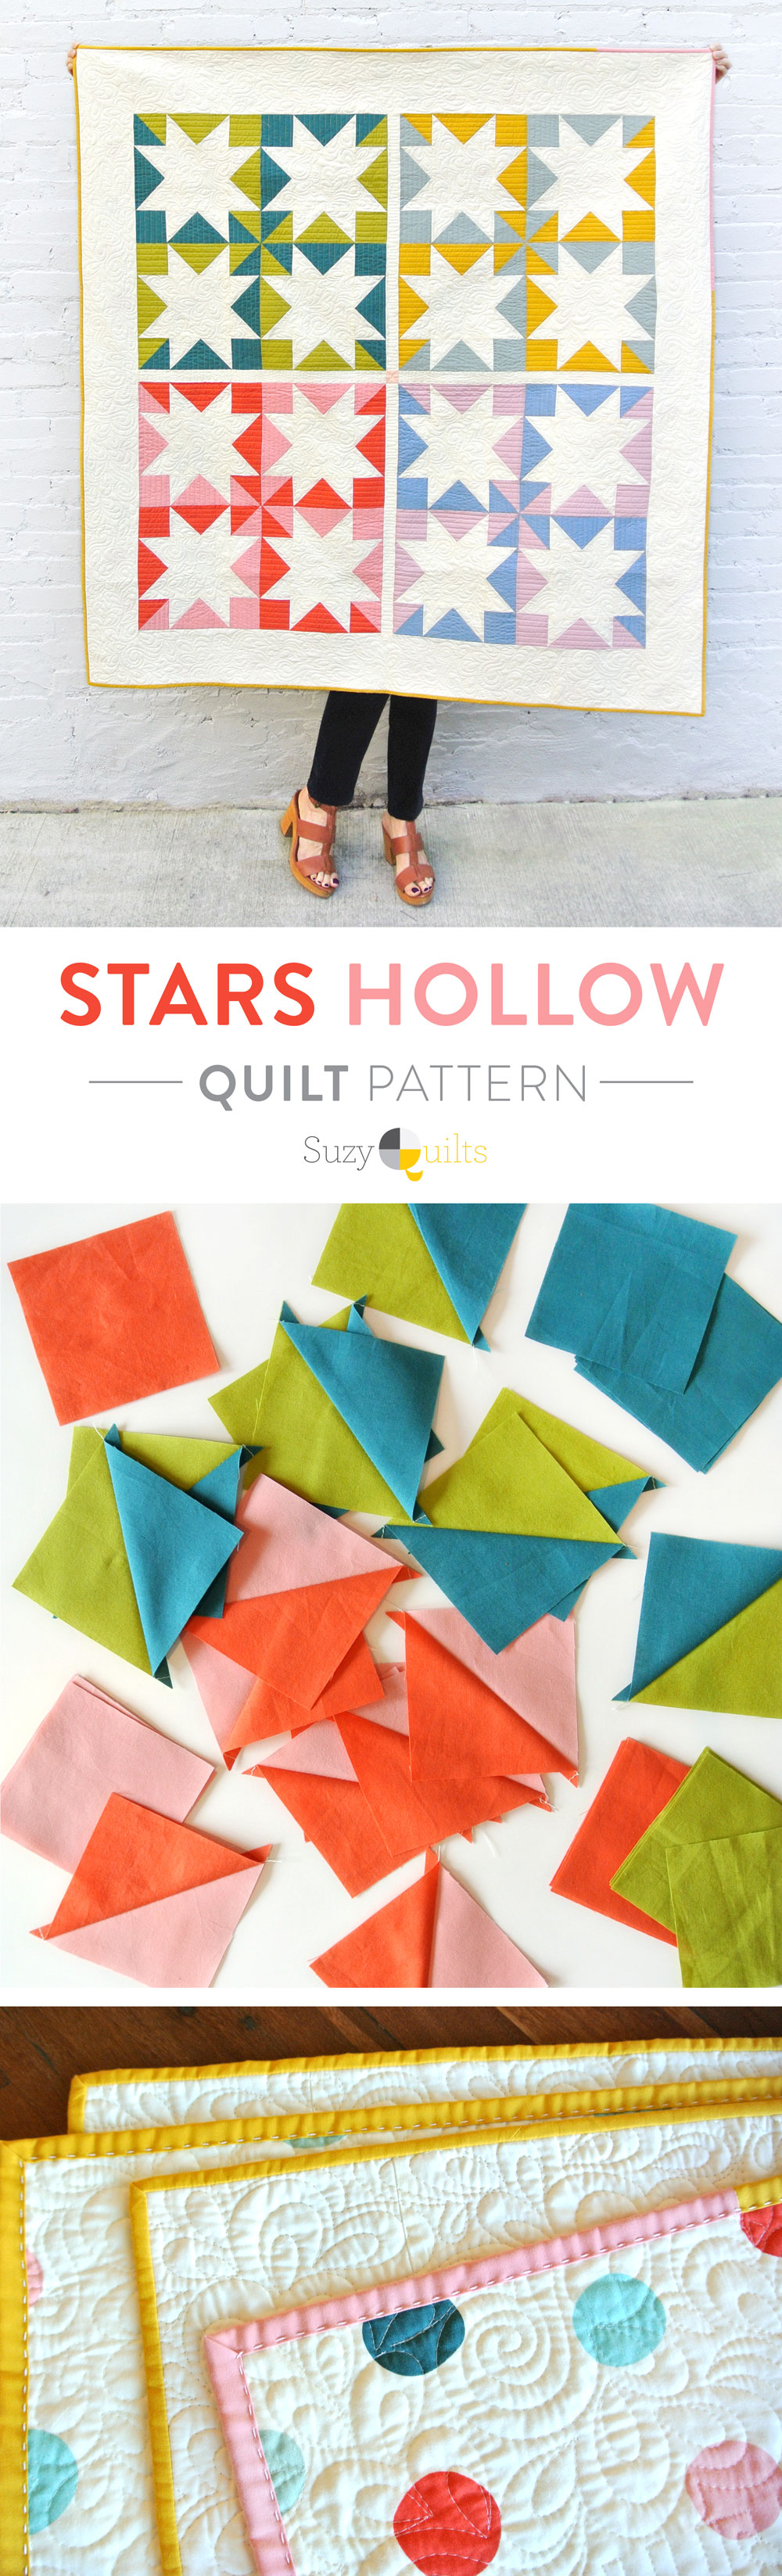 Stars-Hollow-Quilt-Design